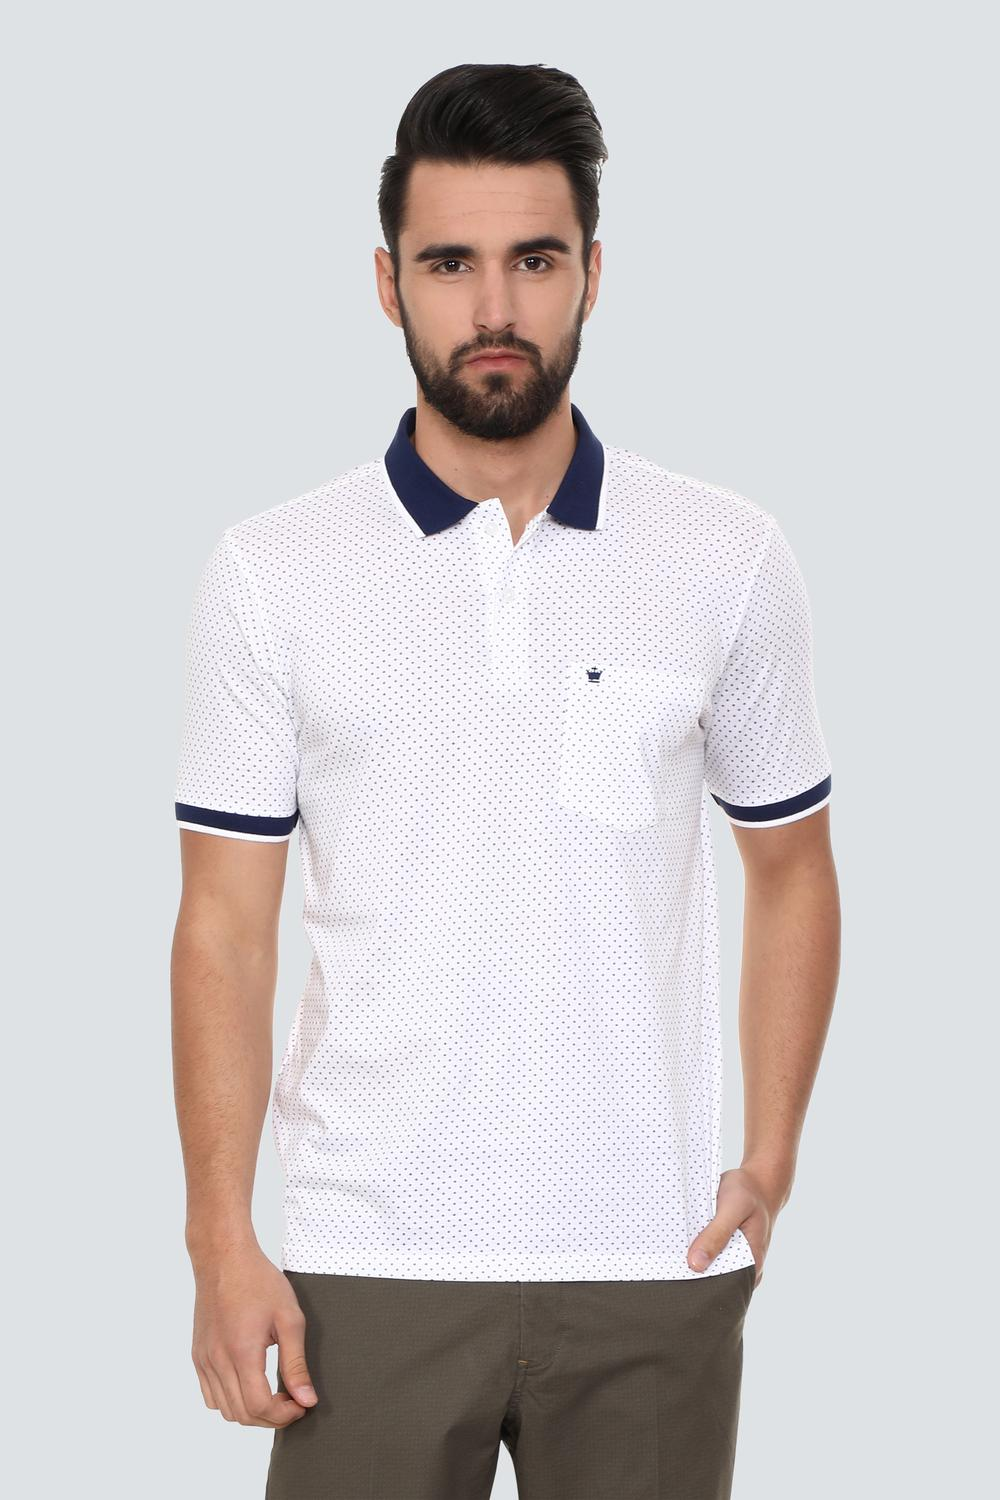 0c04ed7ee5a1 Louis Philippe T-Shirts, Louis Philippe White T Shirt for Men at  Louisphilippe.com